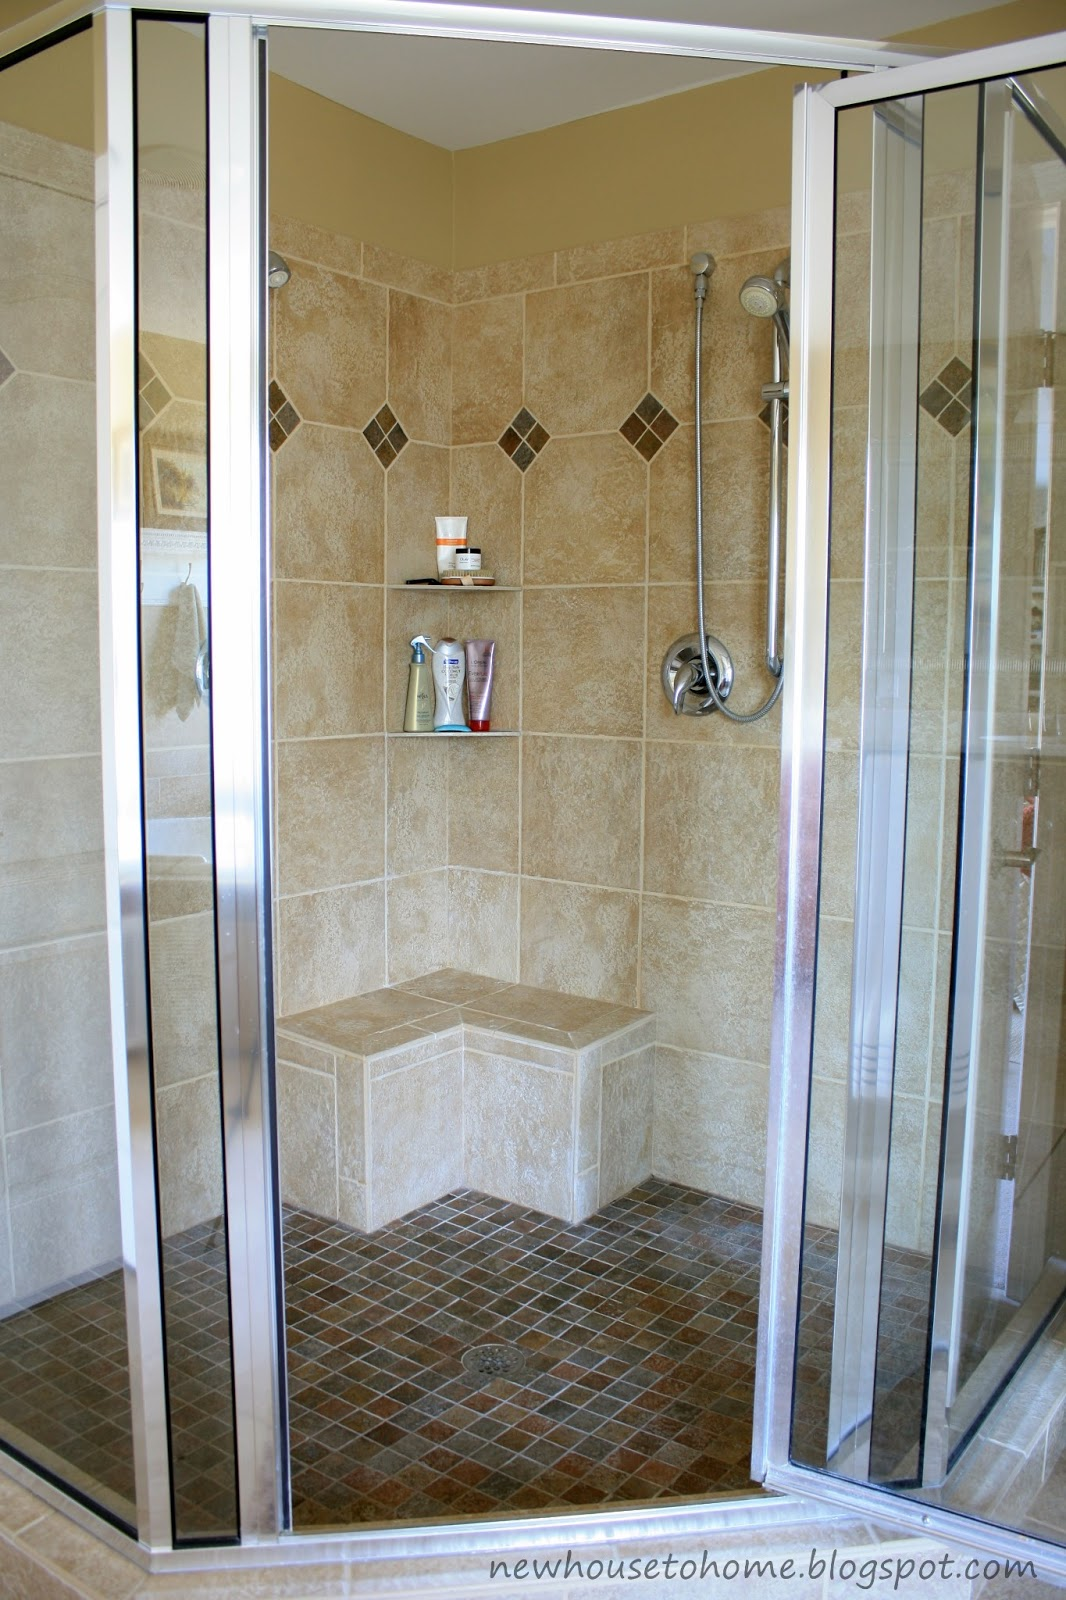 bathroom shower surrounds what to wear with khaki pants bathroom shower surrounds didn t change anything in the shower but i thought you